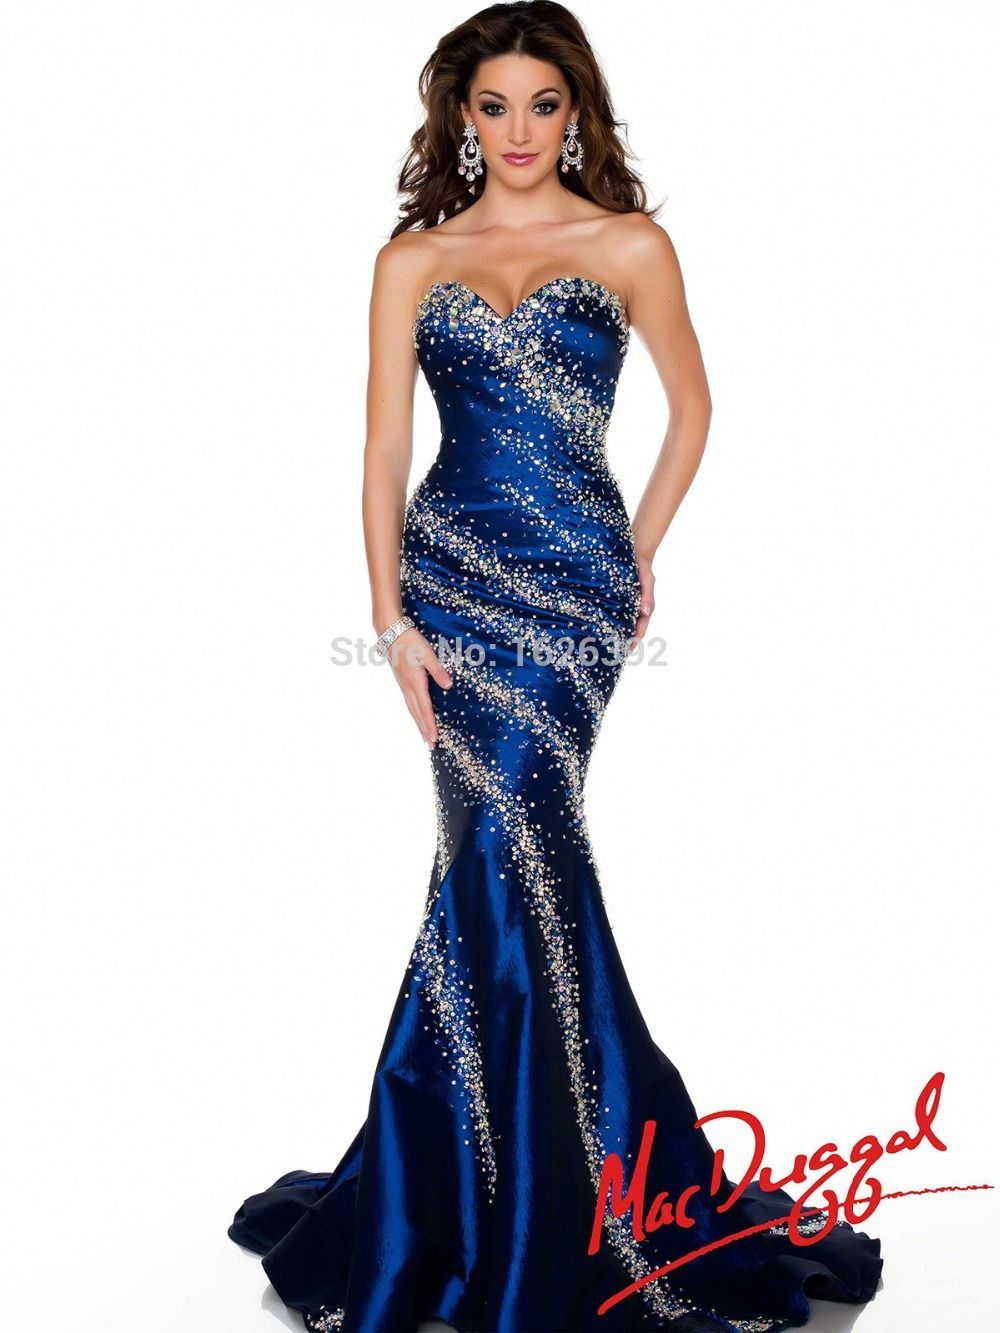 diamond mermaid prom dresses - photo #38